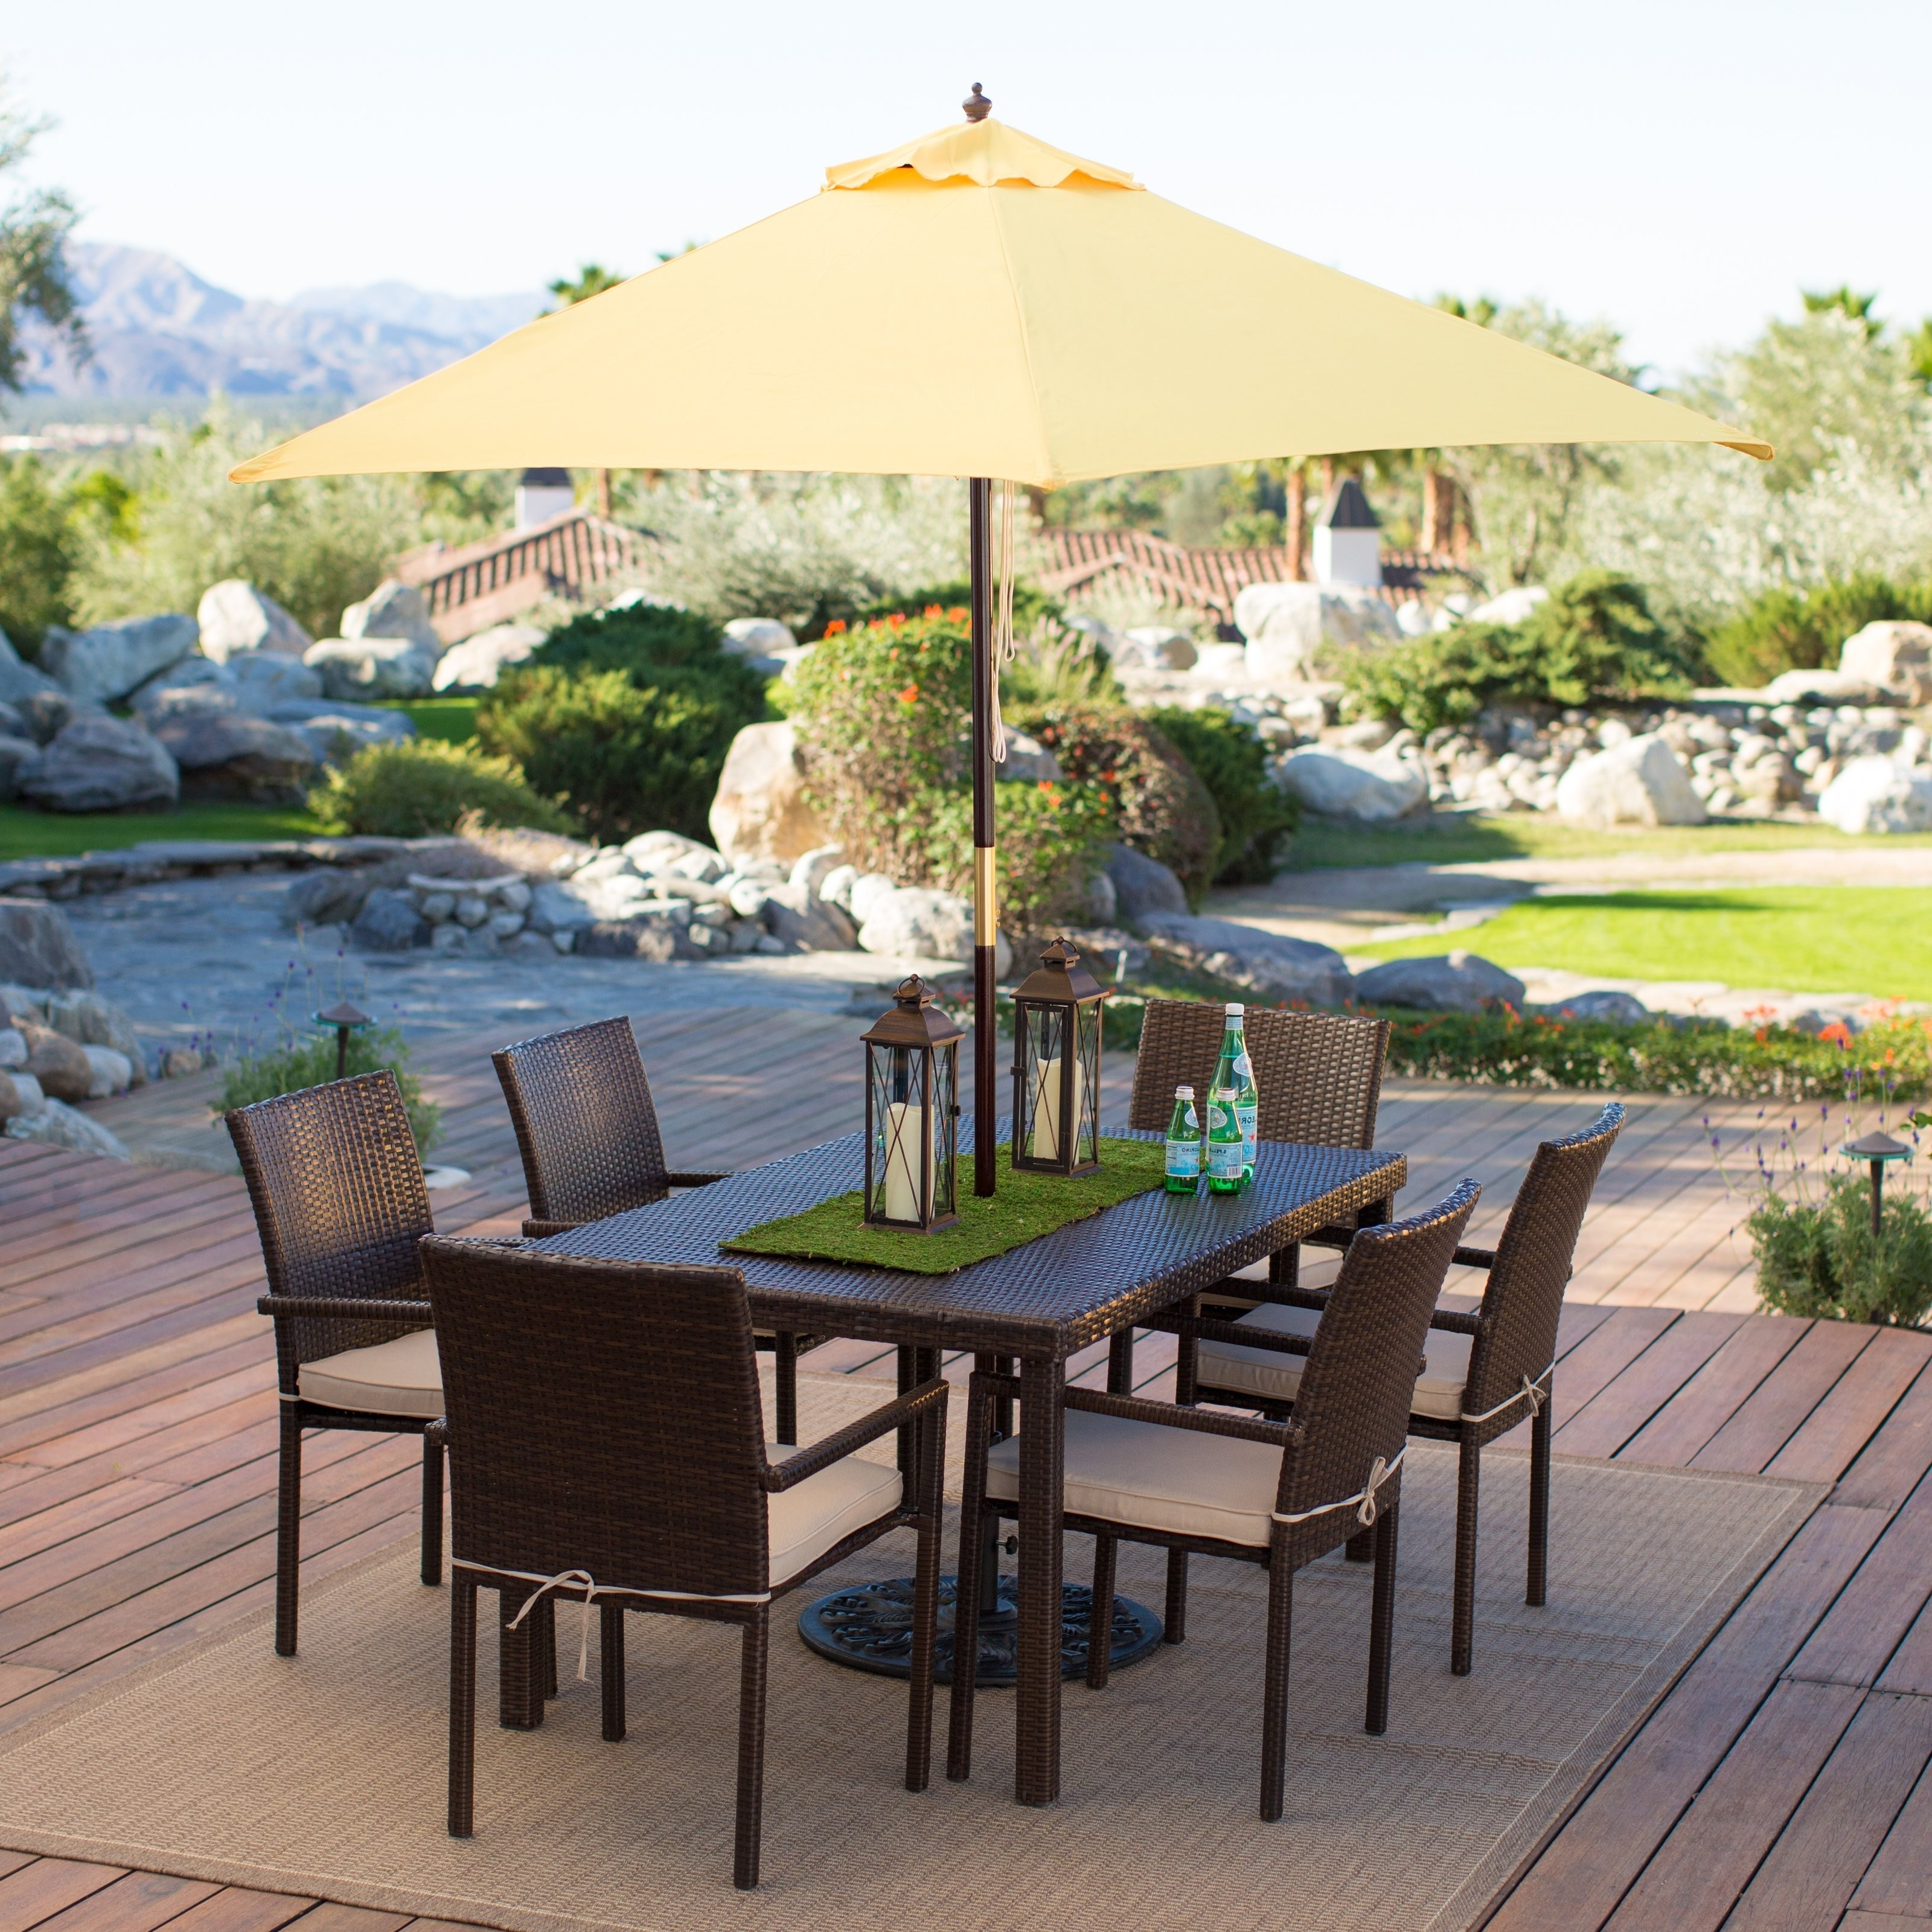 Ideas Fantastic Offset Patio Umbrella For Furniture Ideal Home With Regard To Widely Used Target Patio Umbrellas (Gallery 11 of 20)